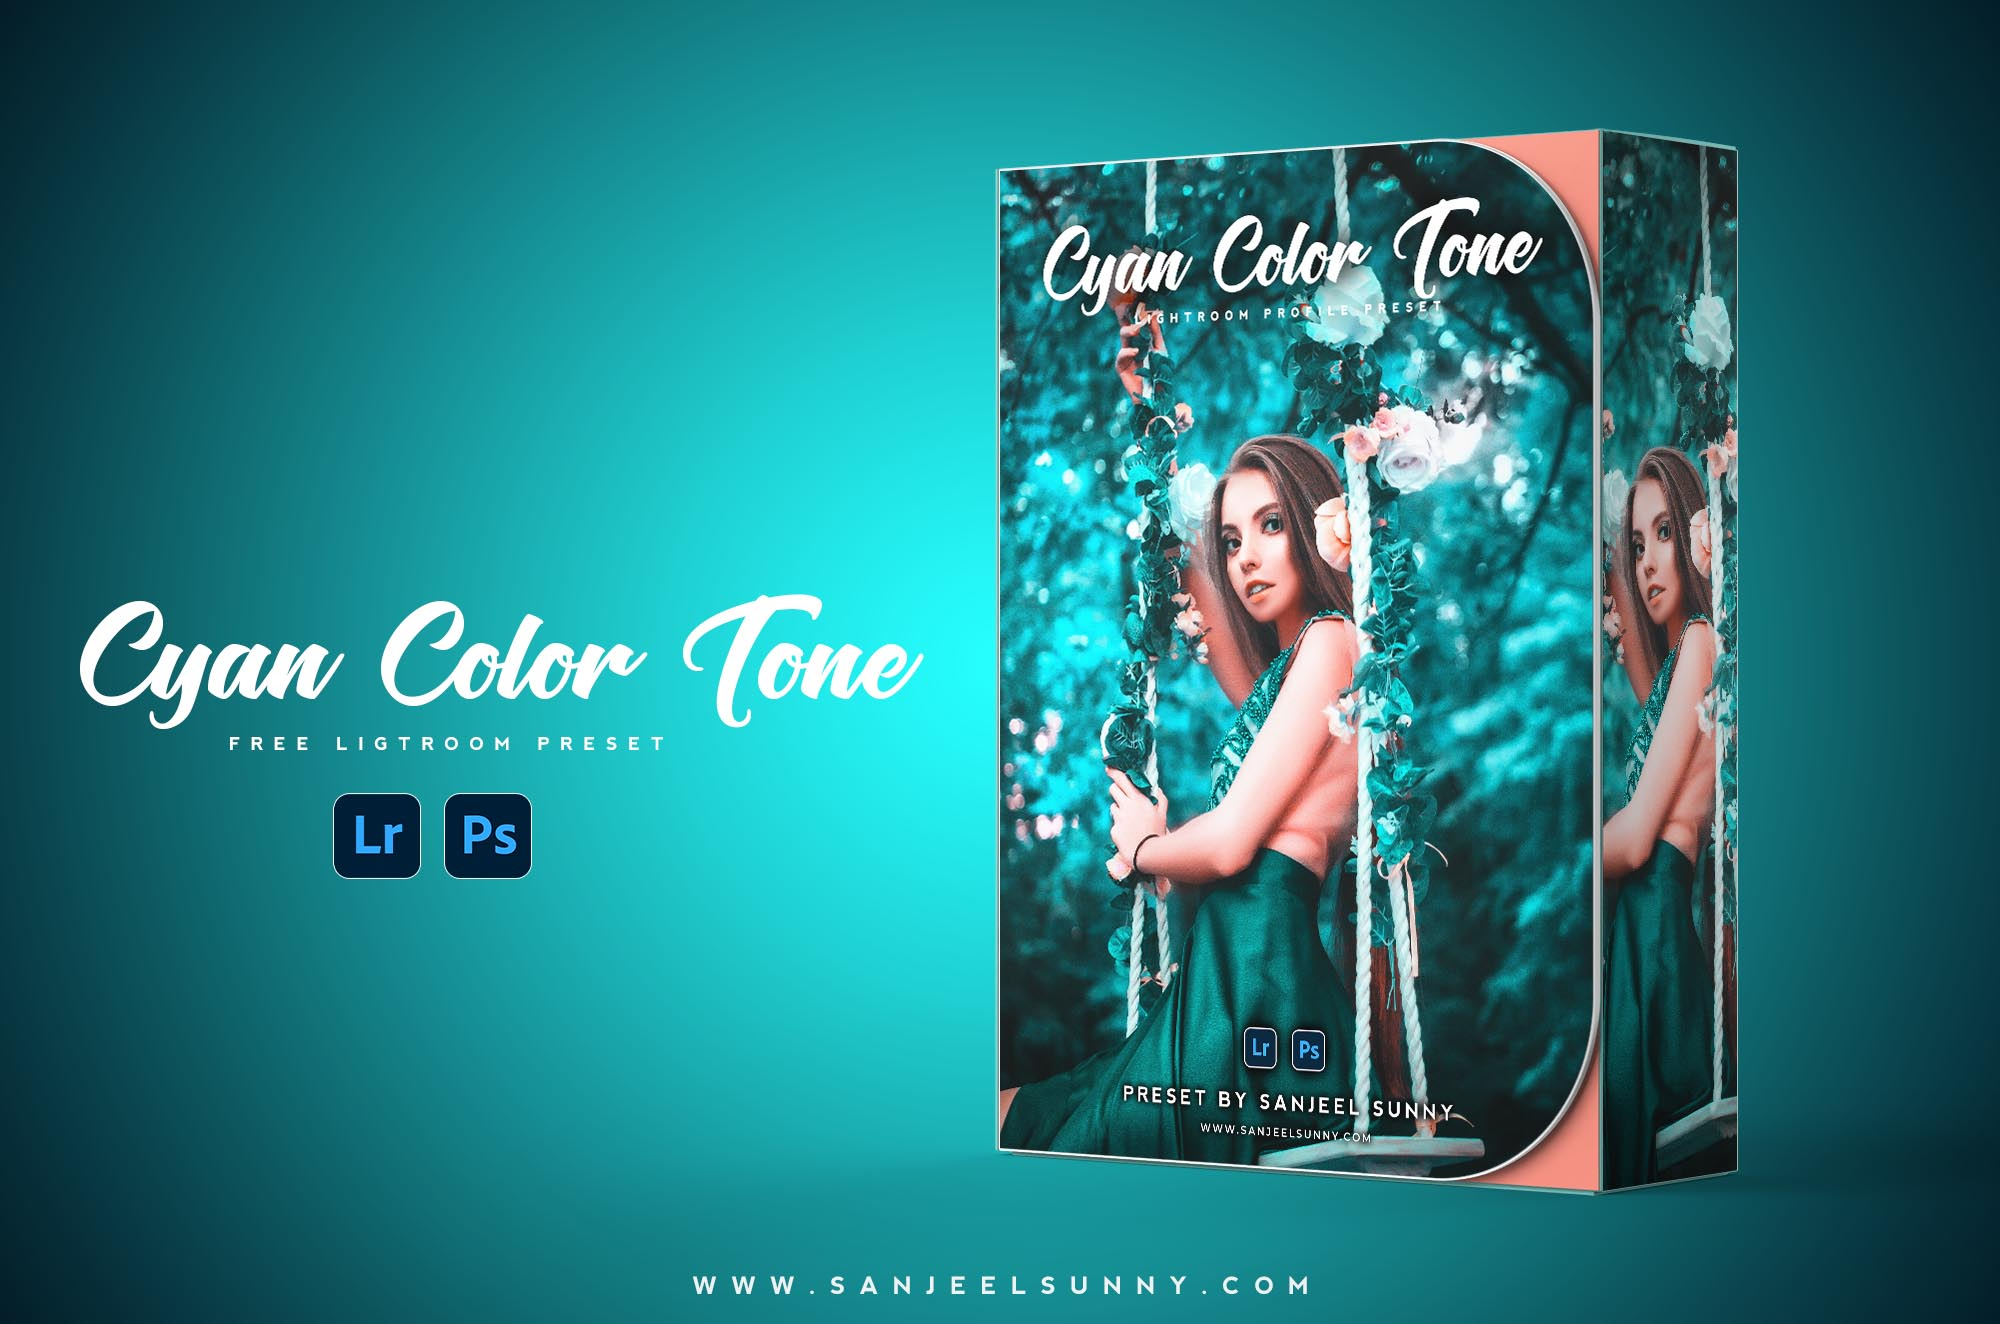 cyan-tone-free-lightroom-preset-for-mobile-and-photosop-free-download-2021-zip